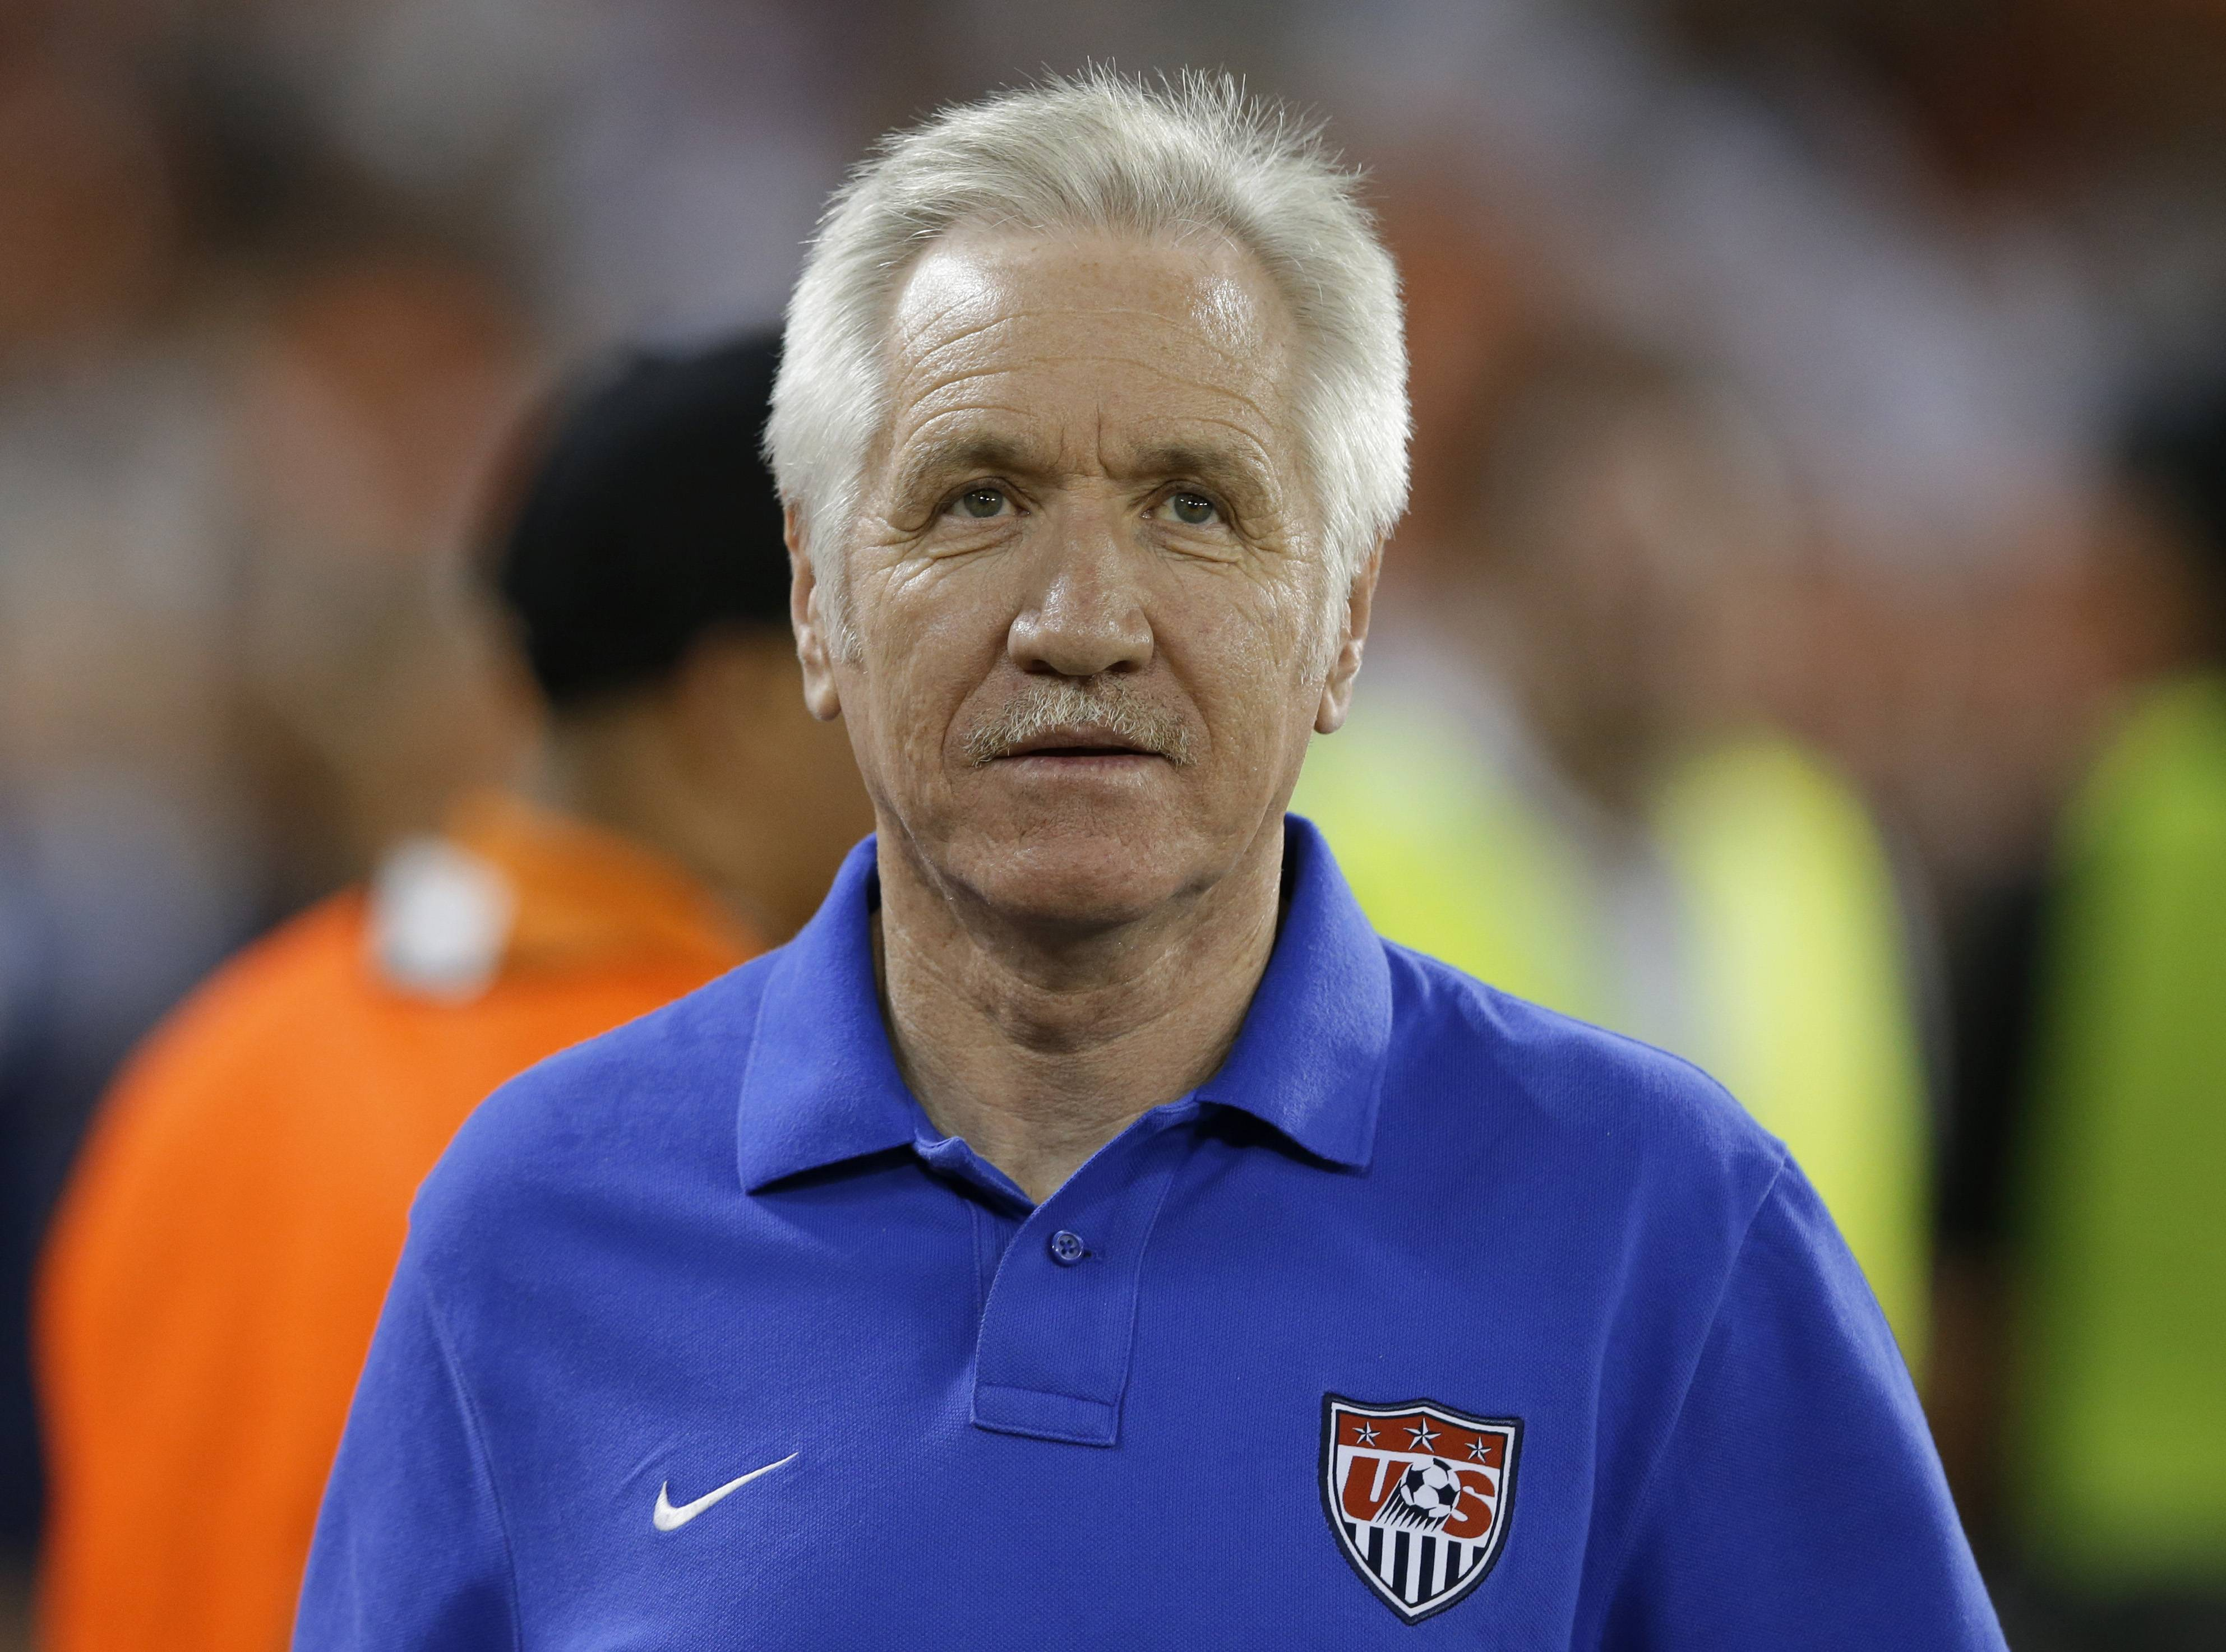 Former U.S. women's national soccer team coach Tom Sermanni